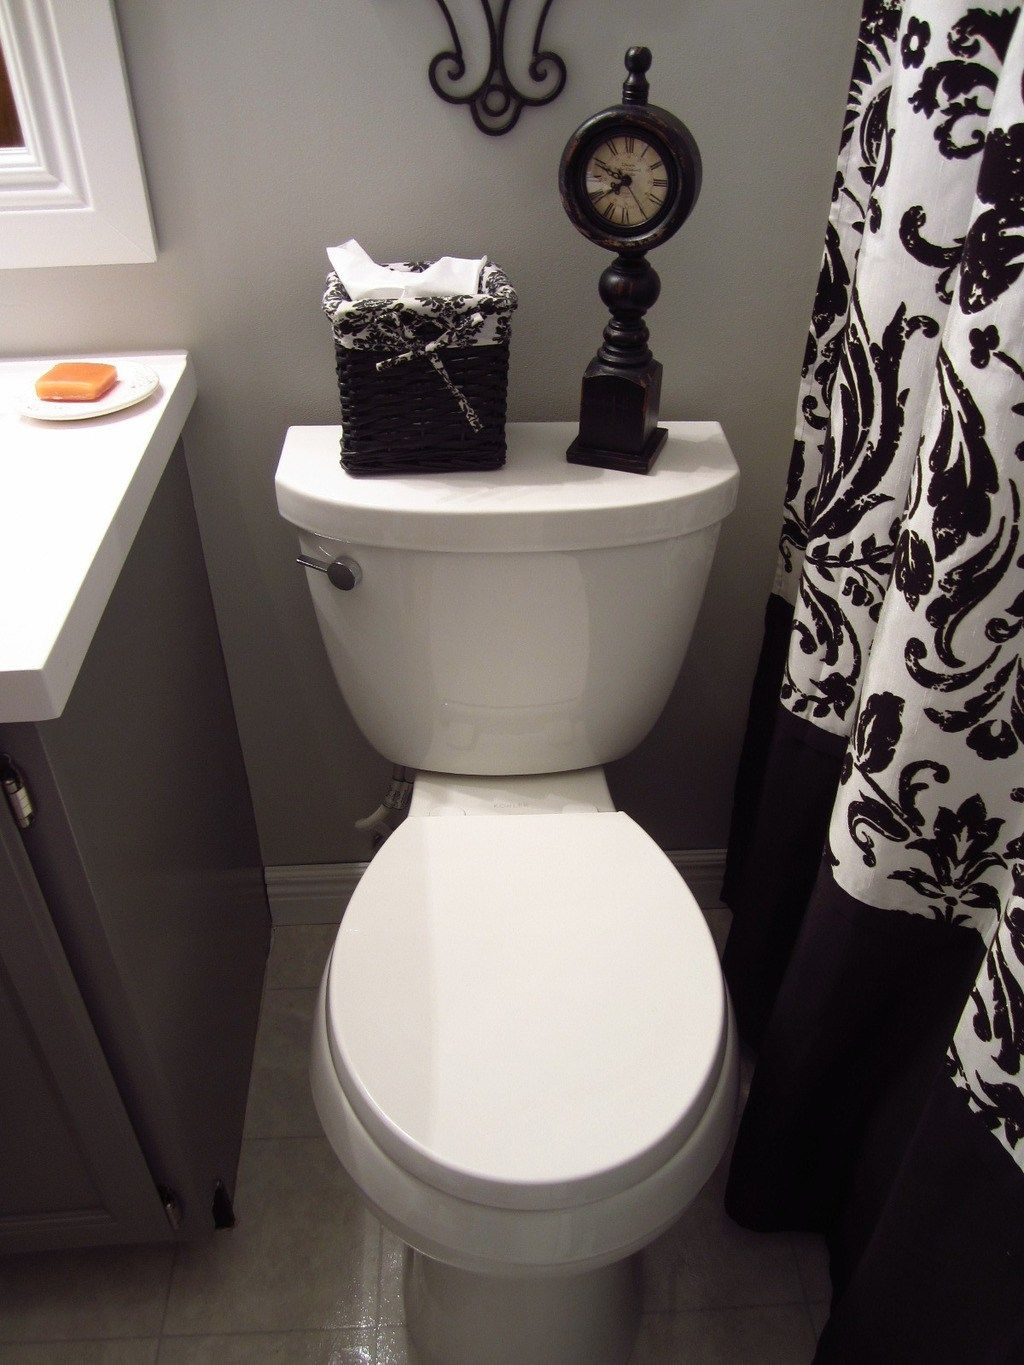 How To Remove An Old Toilet And Install A New One Home Ideas Toilet Bathroom Bathroom Toilets